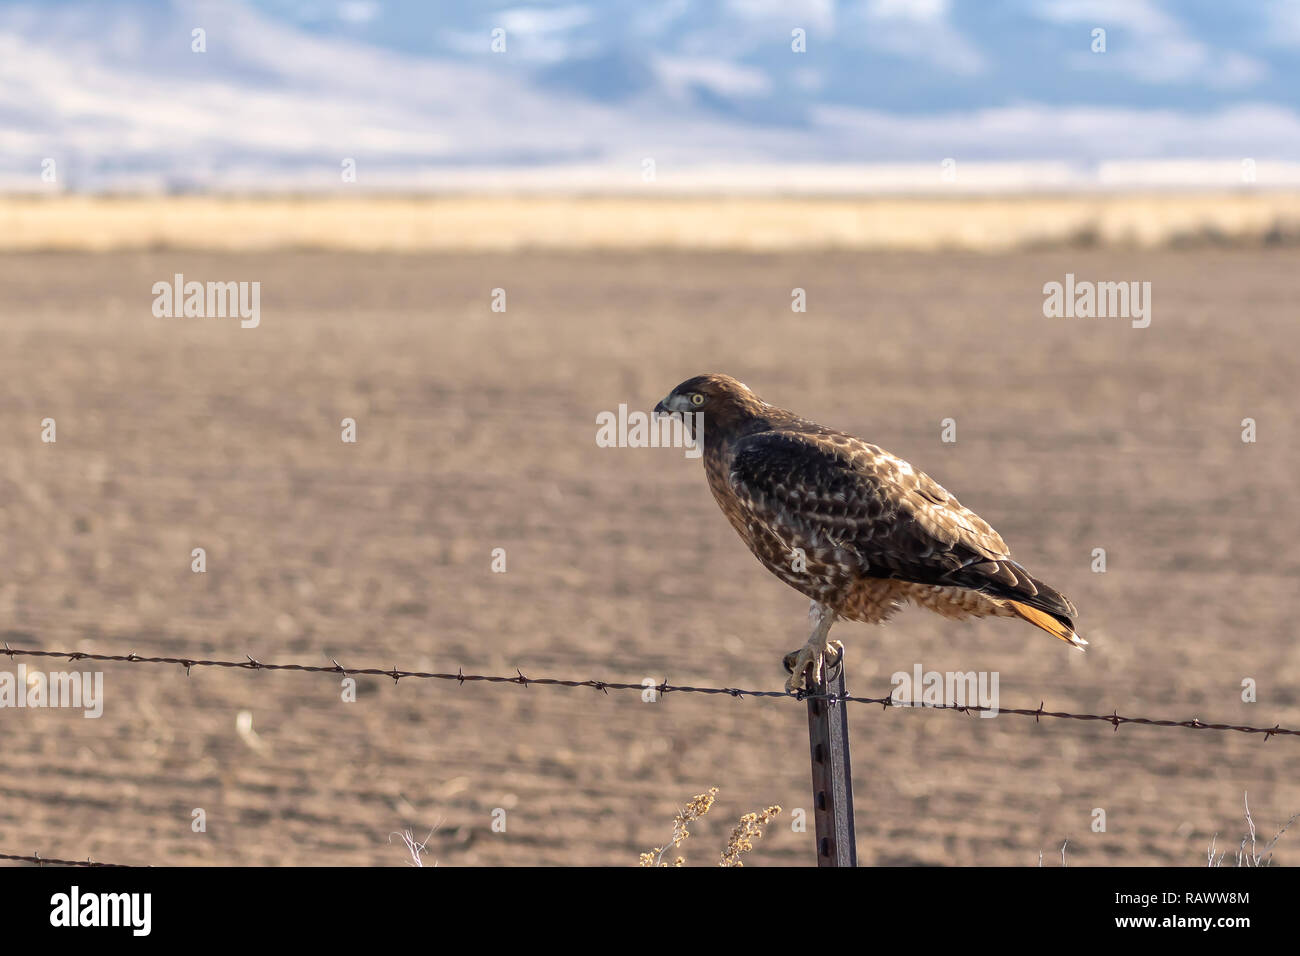 Hawk perched on a barbed wire fence post looking out over a field with copy space. - Stock Image